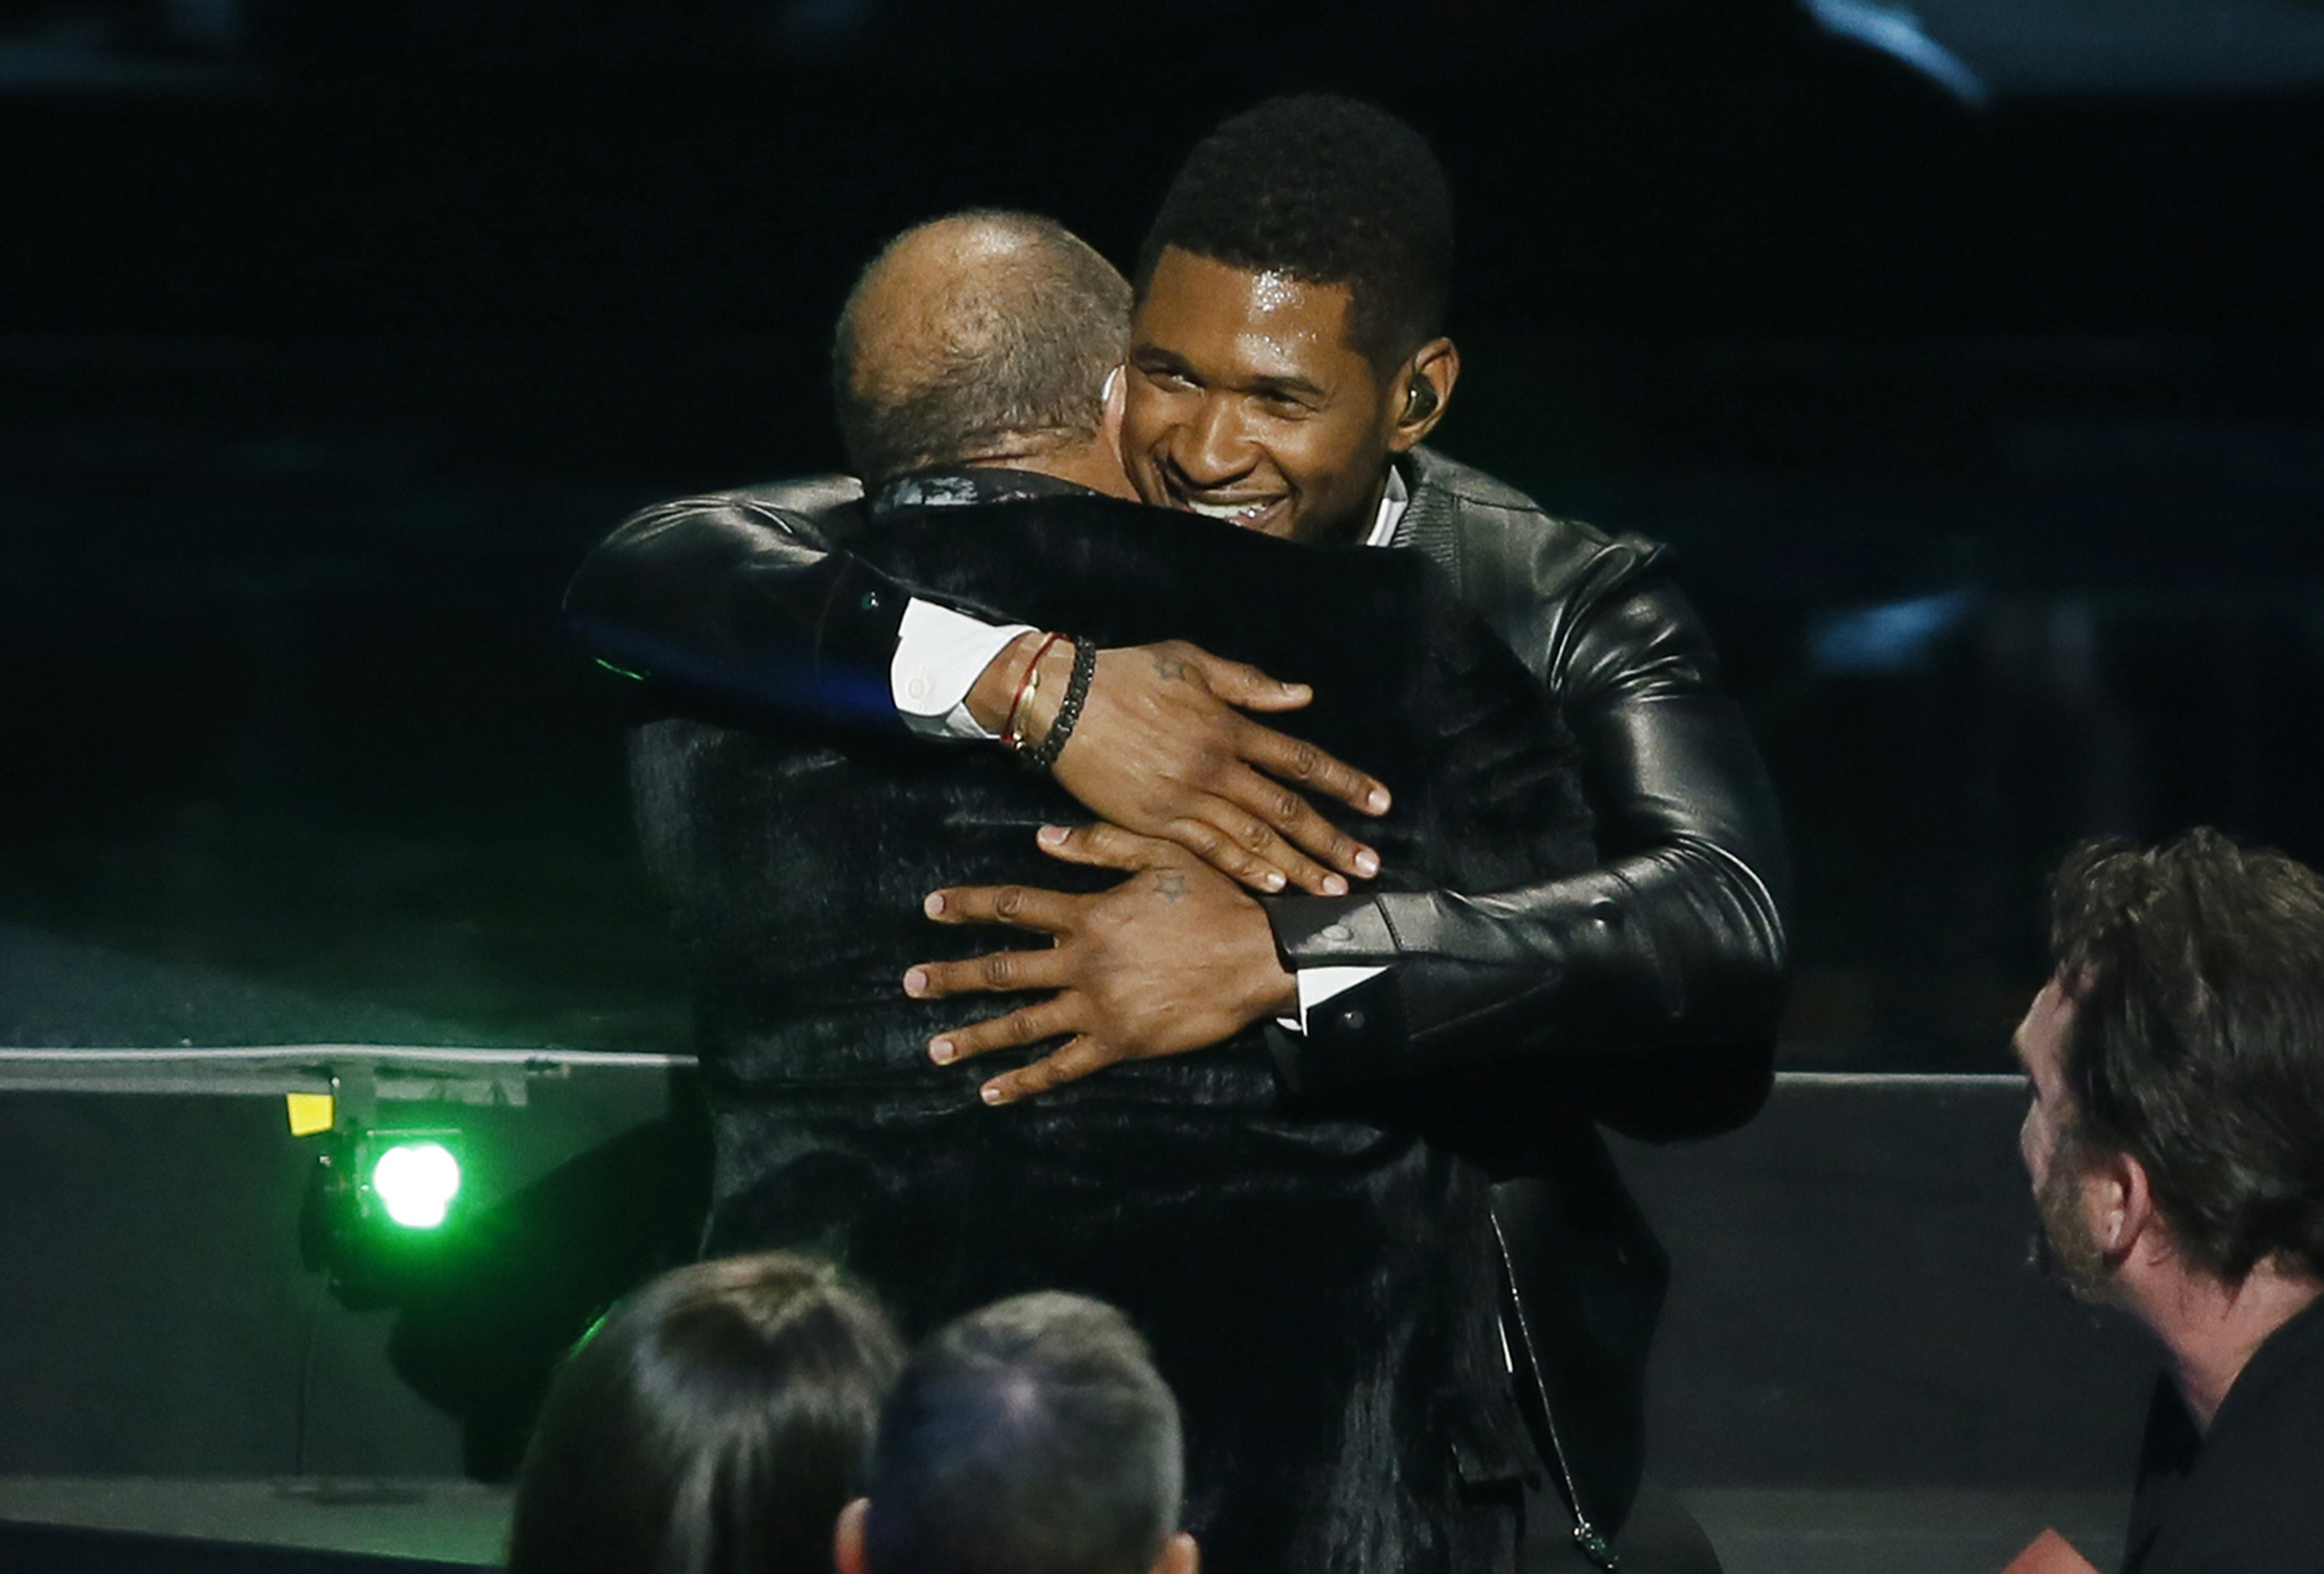 usher quincy jones hug